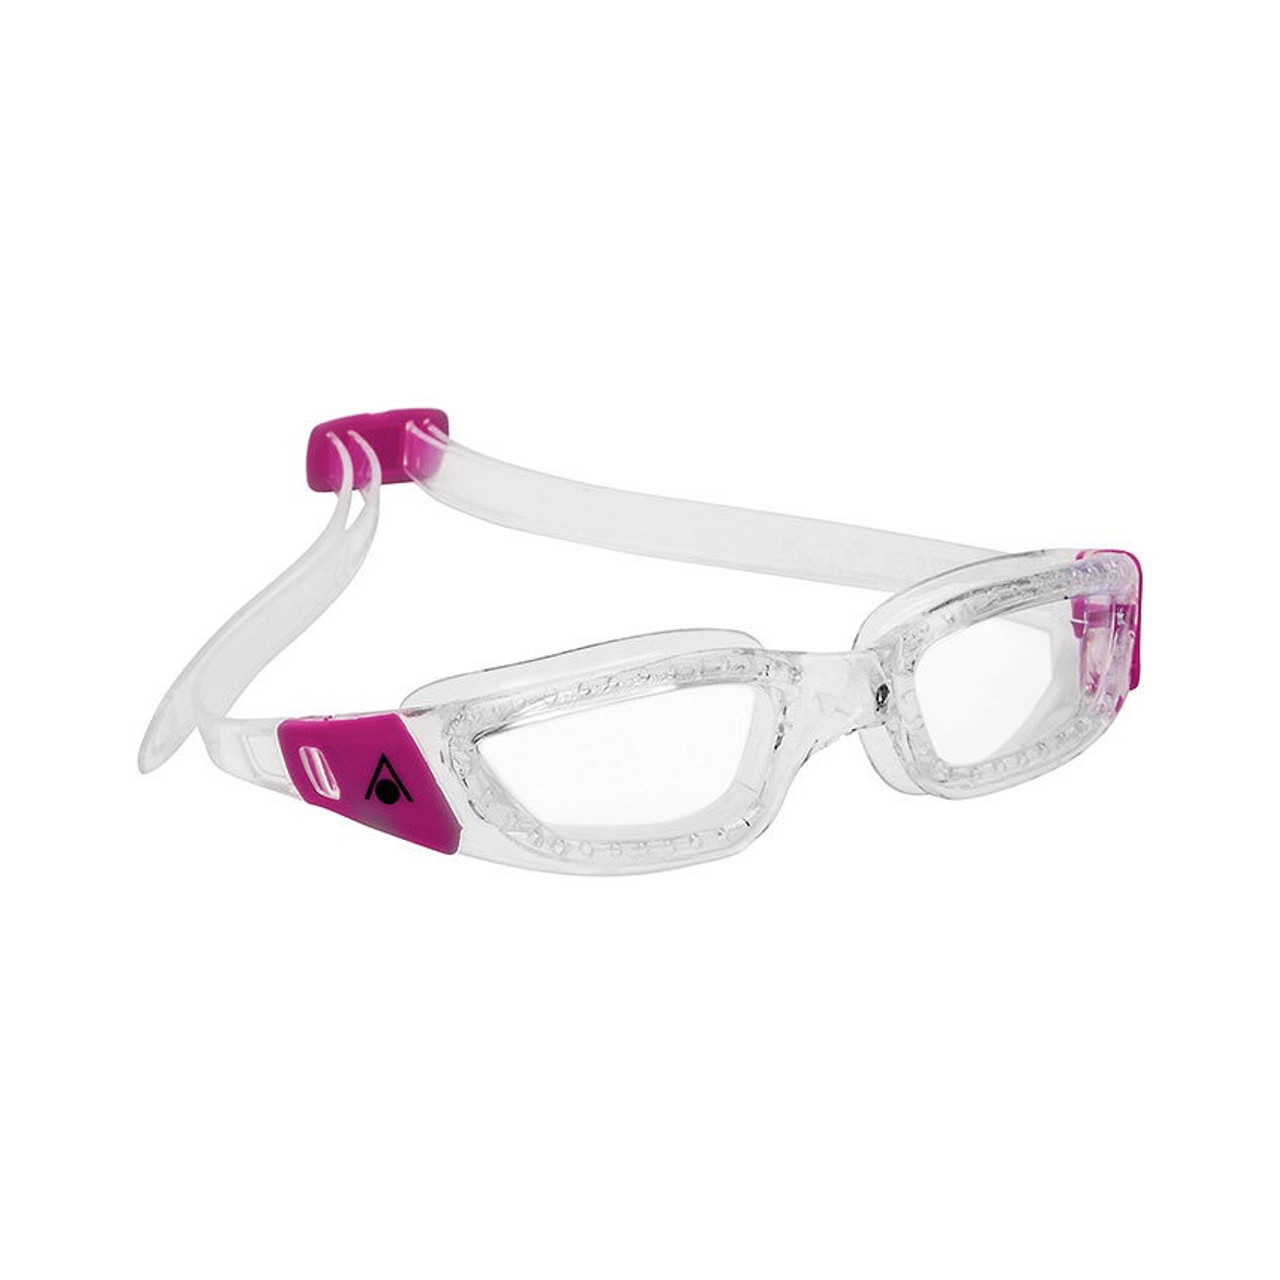 4b9e45f7c Aqua Sphere Kameleon Lady Goggles with Clear Lens